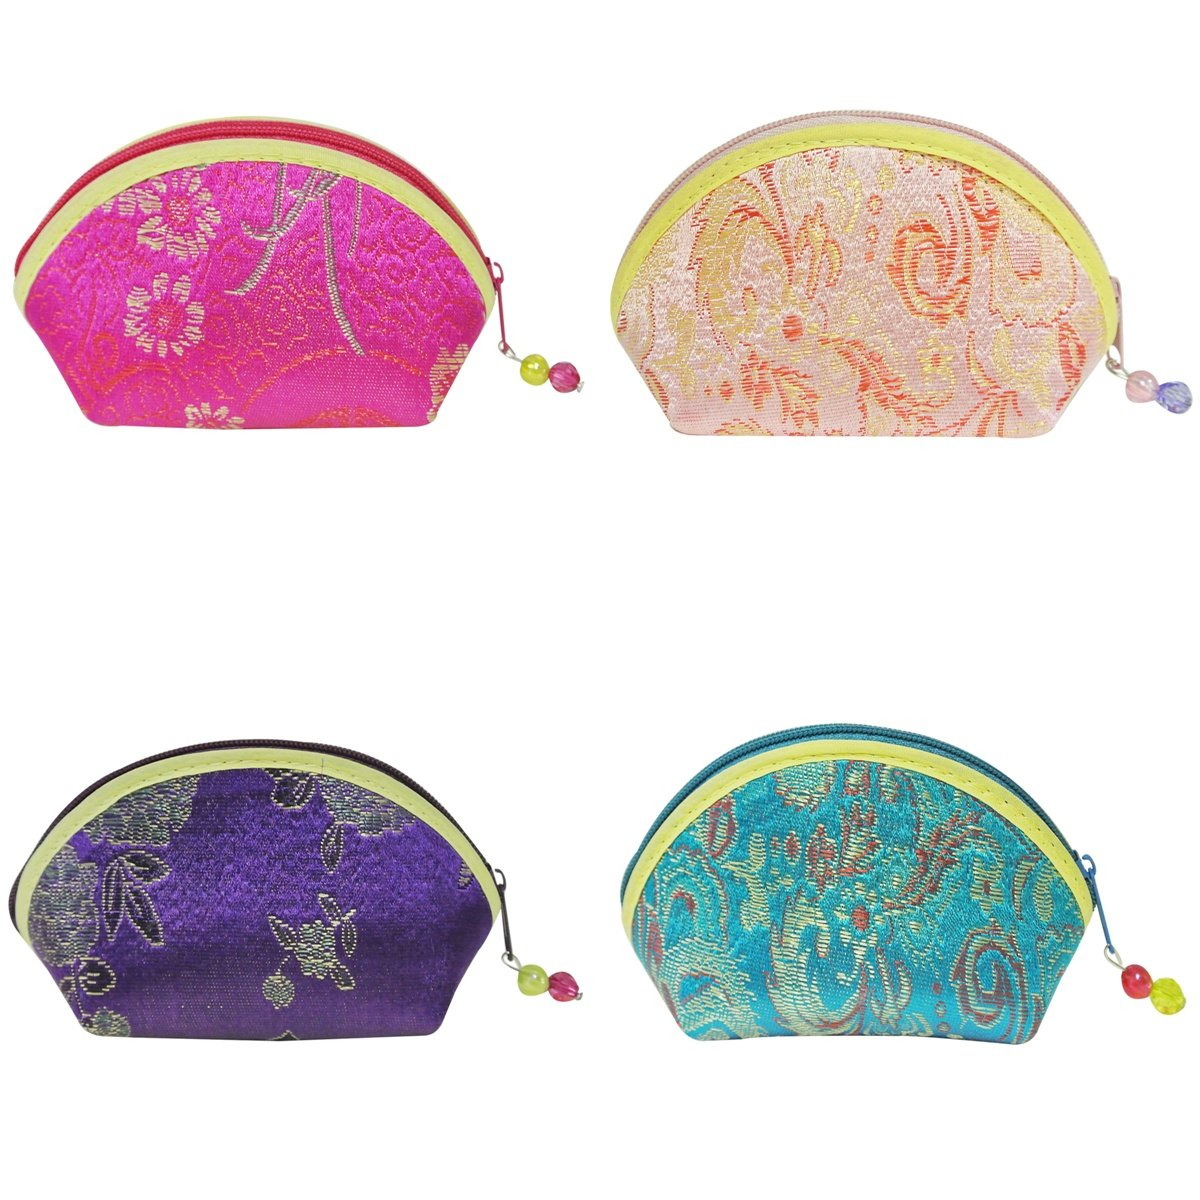 Wrapables Silk Embroidered Brocade Gift Jewelry Coin Pouch Purse, Fuchsia/Teal/Pink/Purple, Set of 4